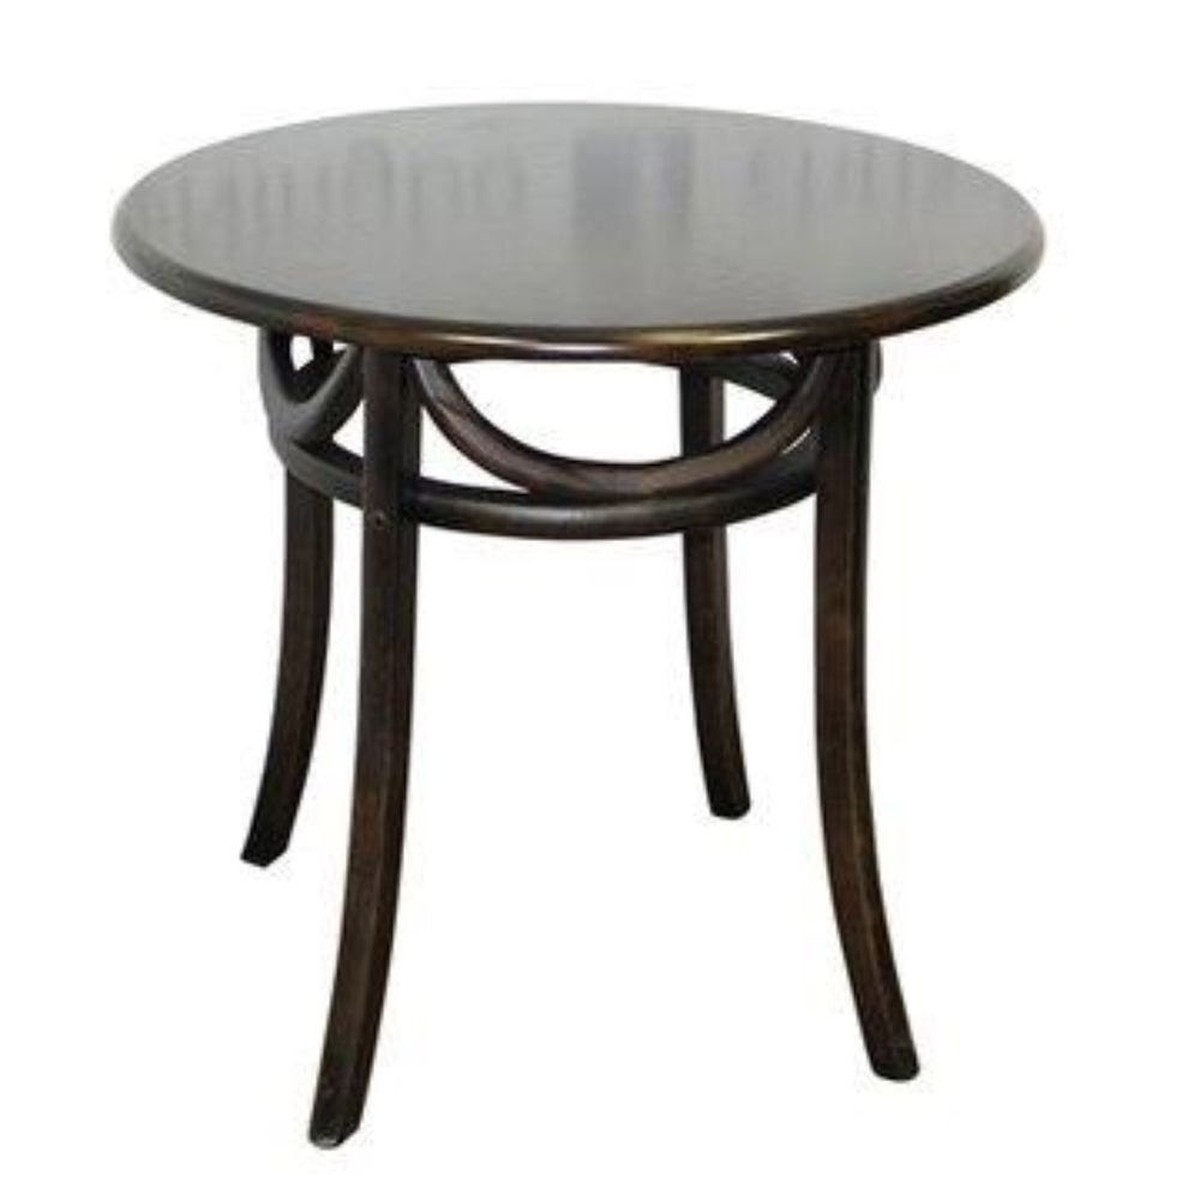 secondhand chairs and tables restaurant or cafe tables wooden elm restaurant tables uk. Black Bedroom Furniture Sets. Home Design Ideas